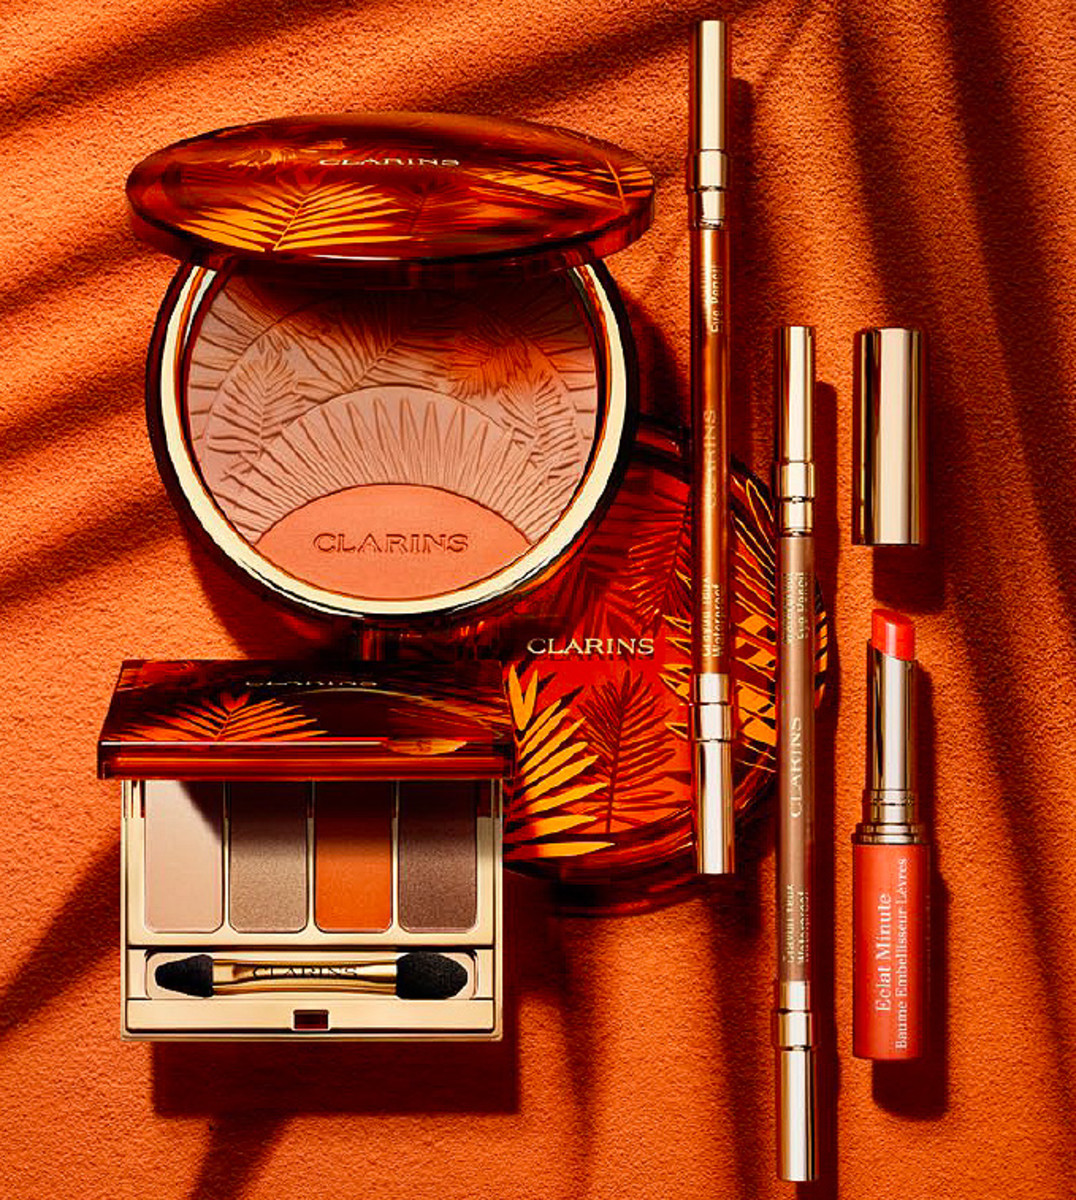 Clarins Sunkissed Summer 2017 makeup collection (limited edition)